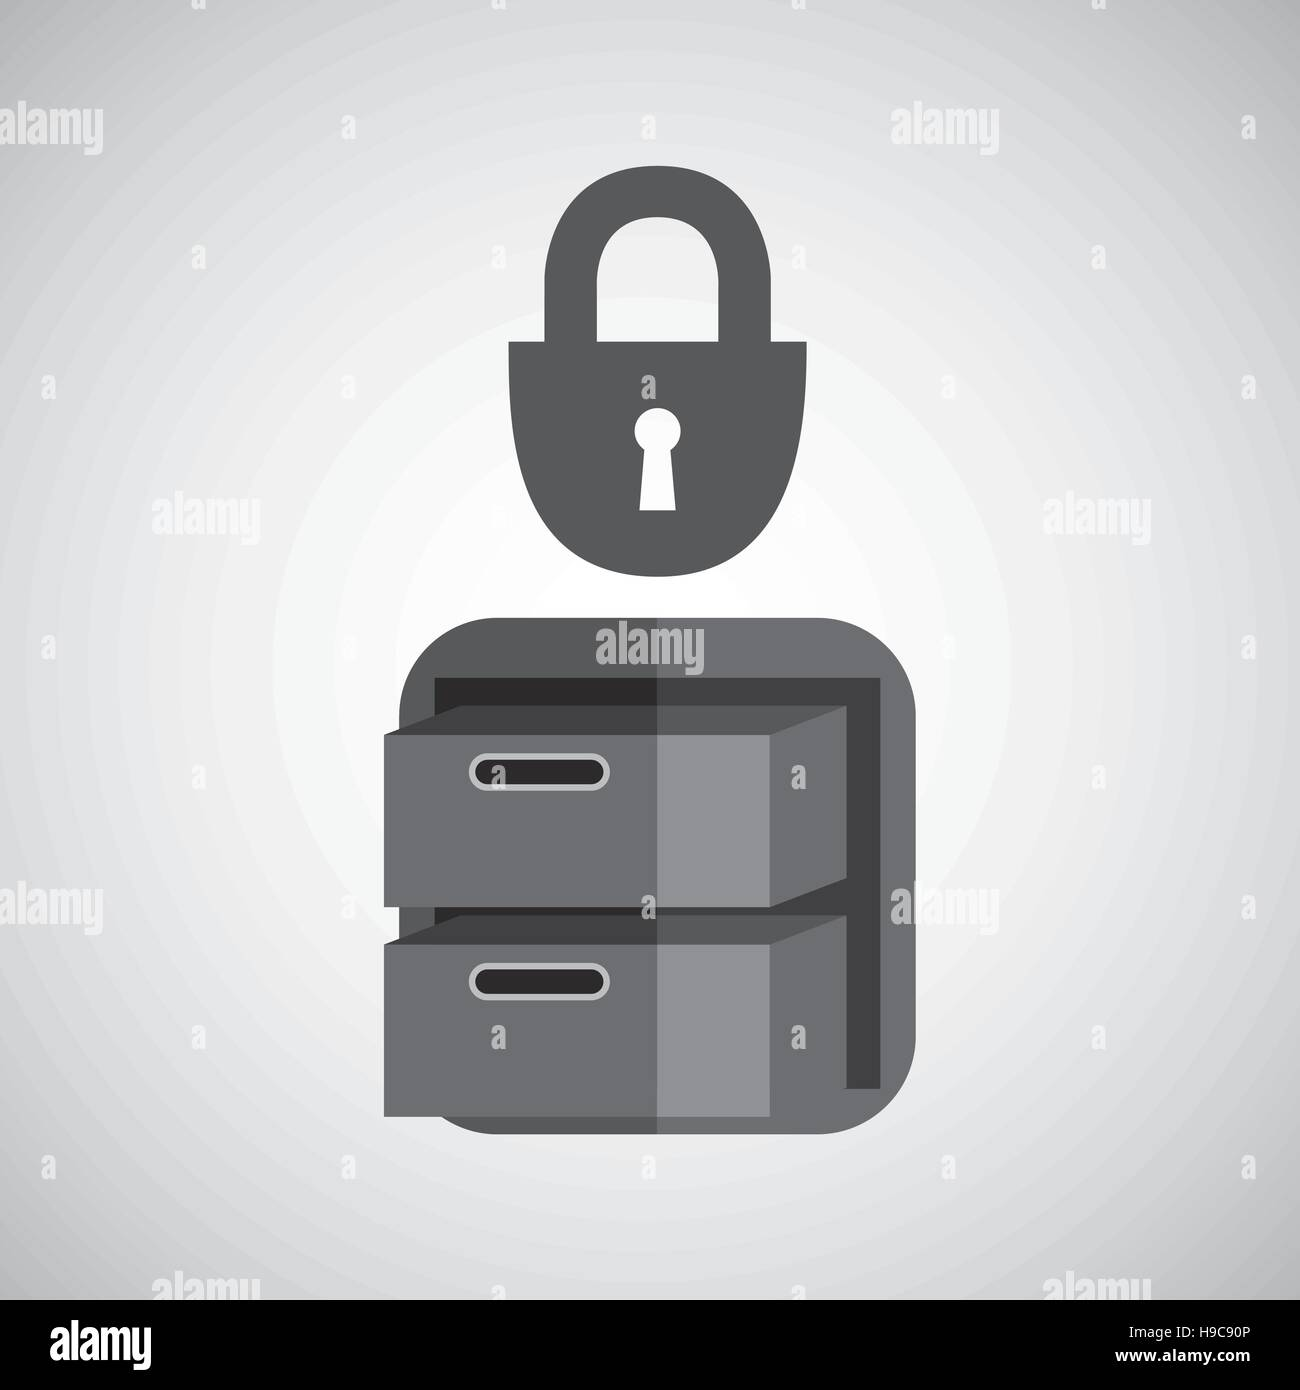 Filing Cabinet Icon Flat Security File Cabinet Icon Design Vector Illustration Eps 10 Stock